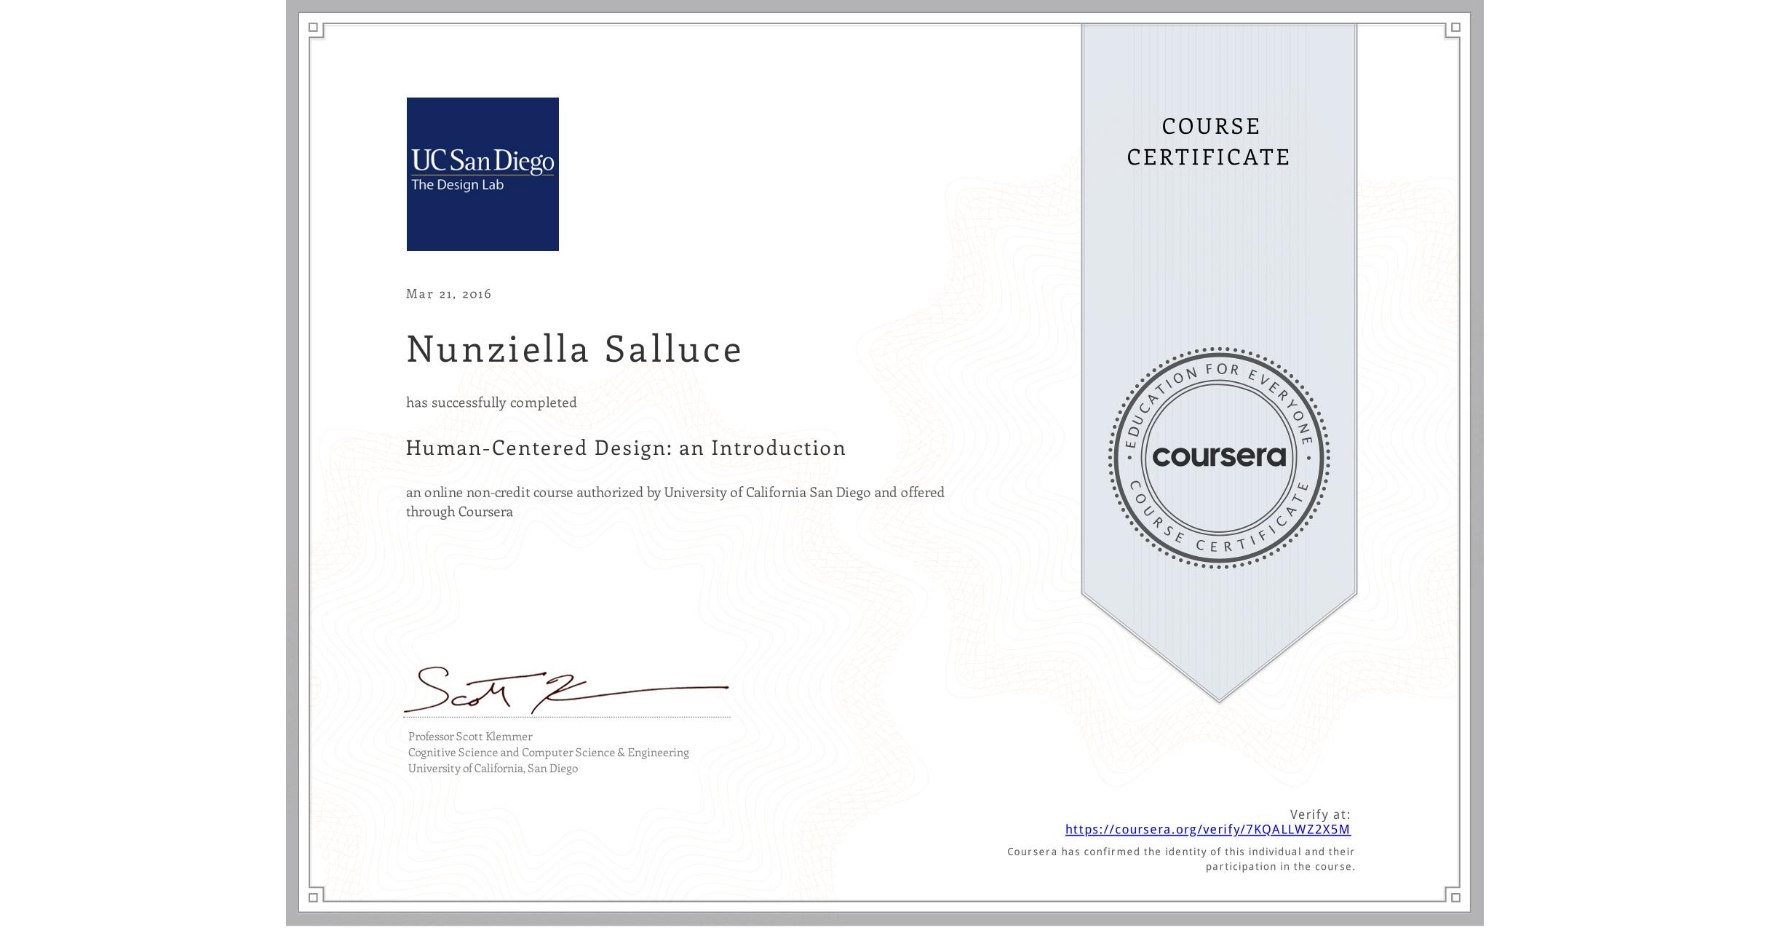 View certificate for Nunziella Salluce, Human-Centered Design: an Introduction, an online non-credit course authorized by University of California San Diego and offered through Coursera